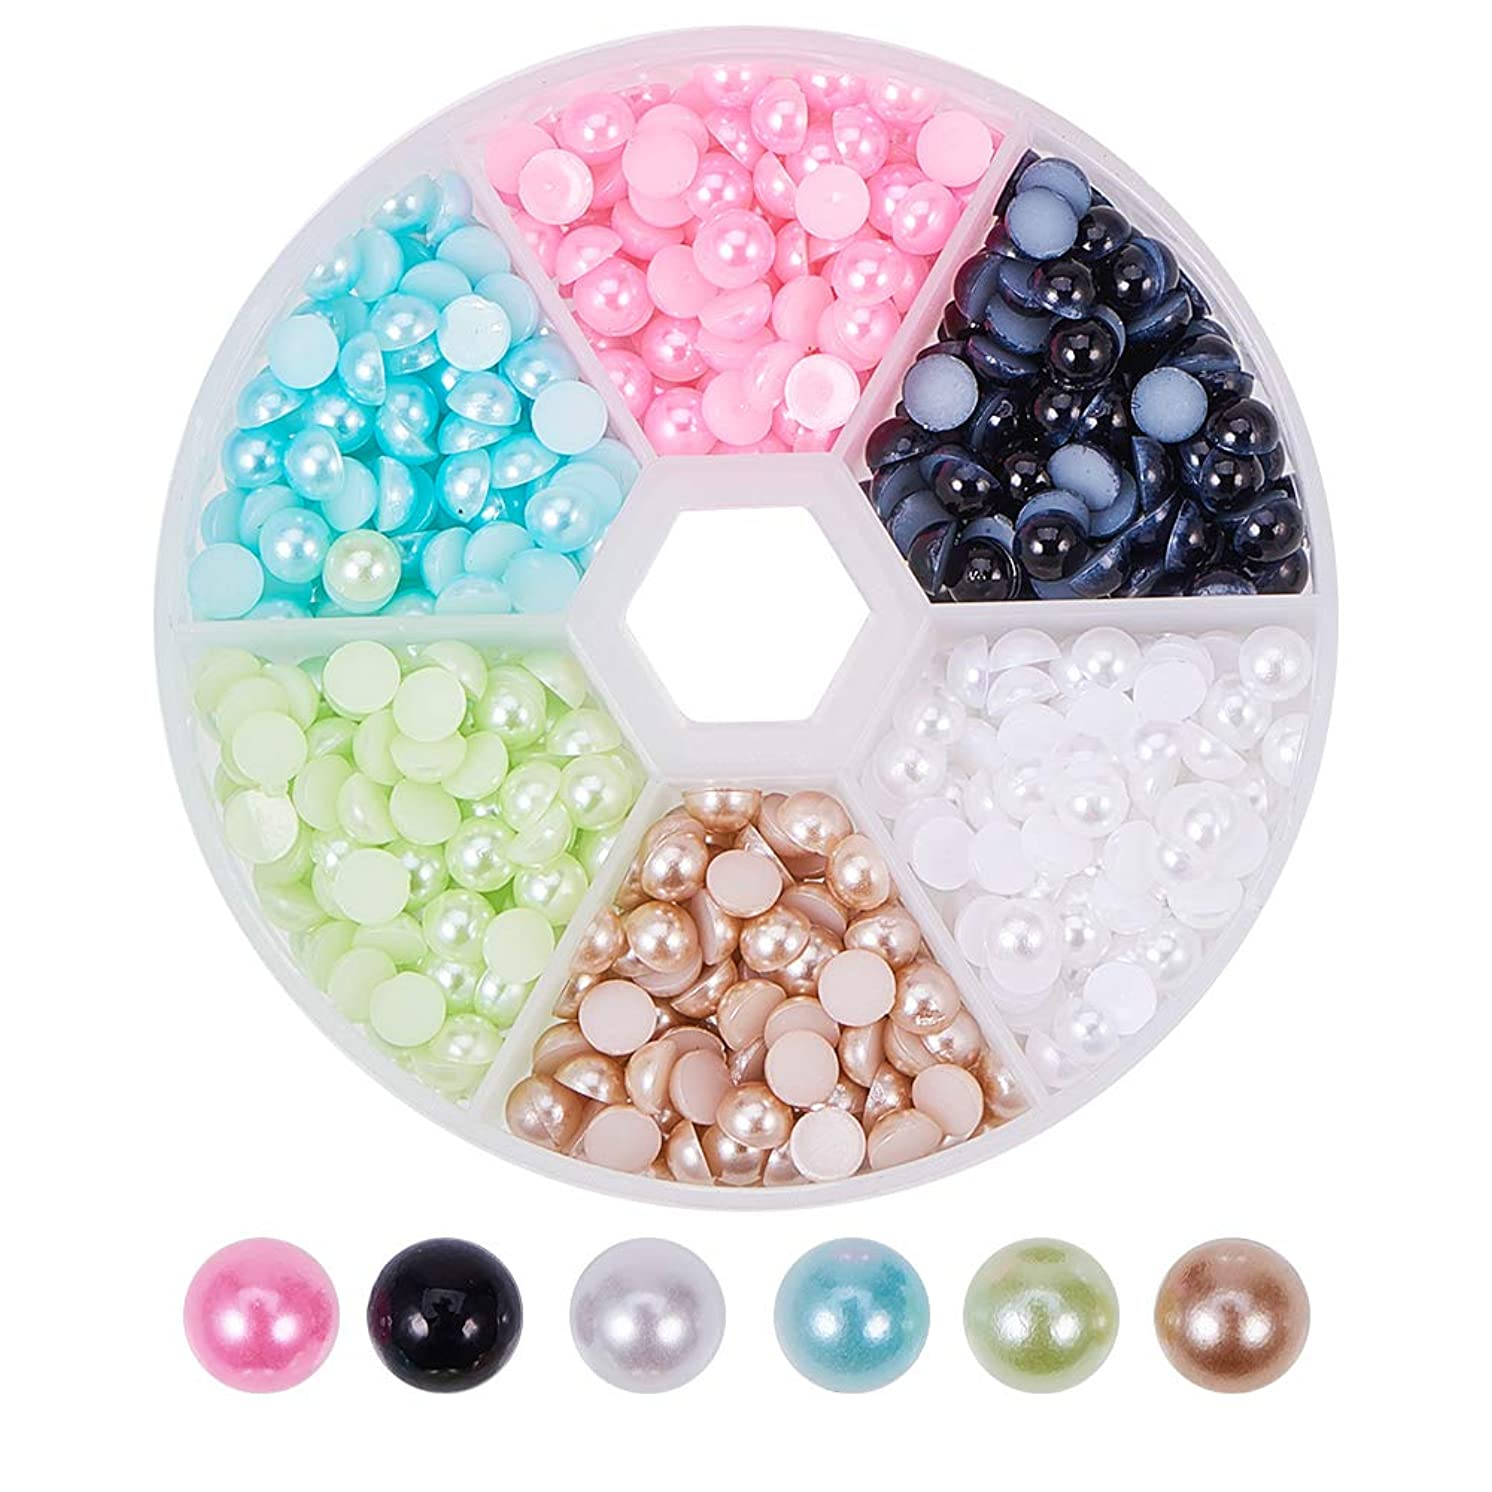 PandaHall Elite 1 Box 6 Colors Flat Back Half Round Pearl Cabochon Diameter 5mm for Nail Craft DIY Decoration